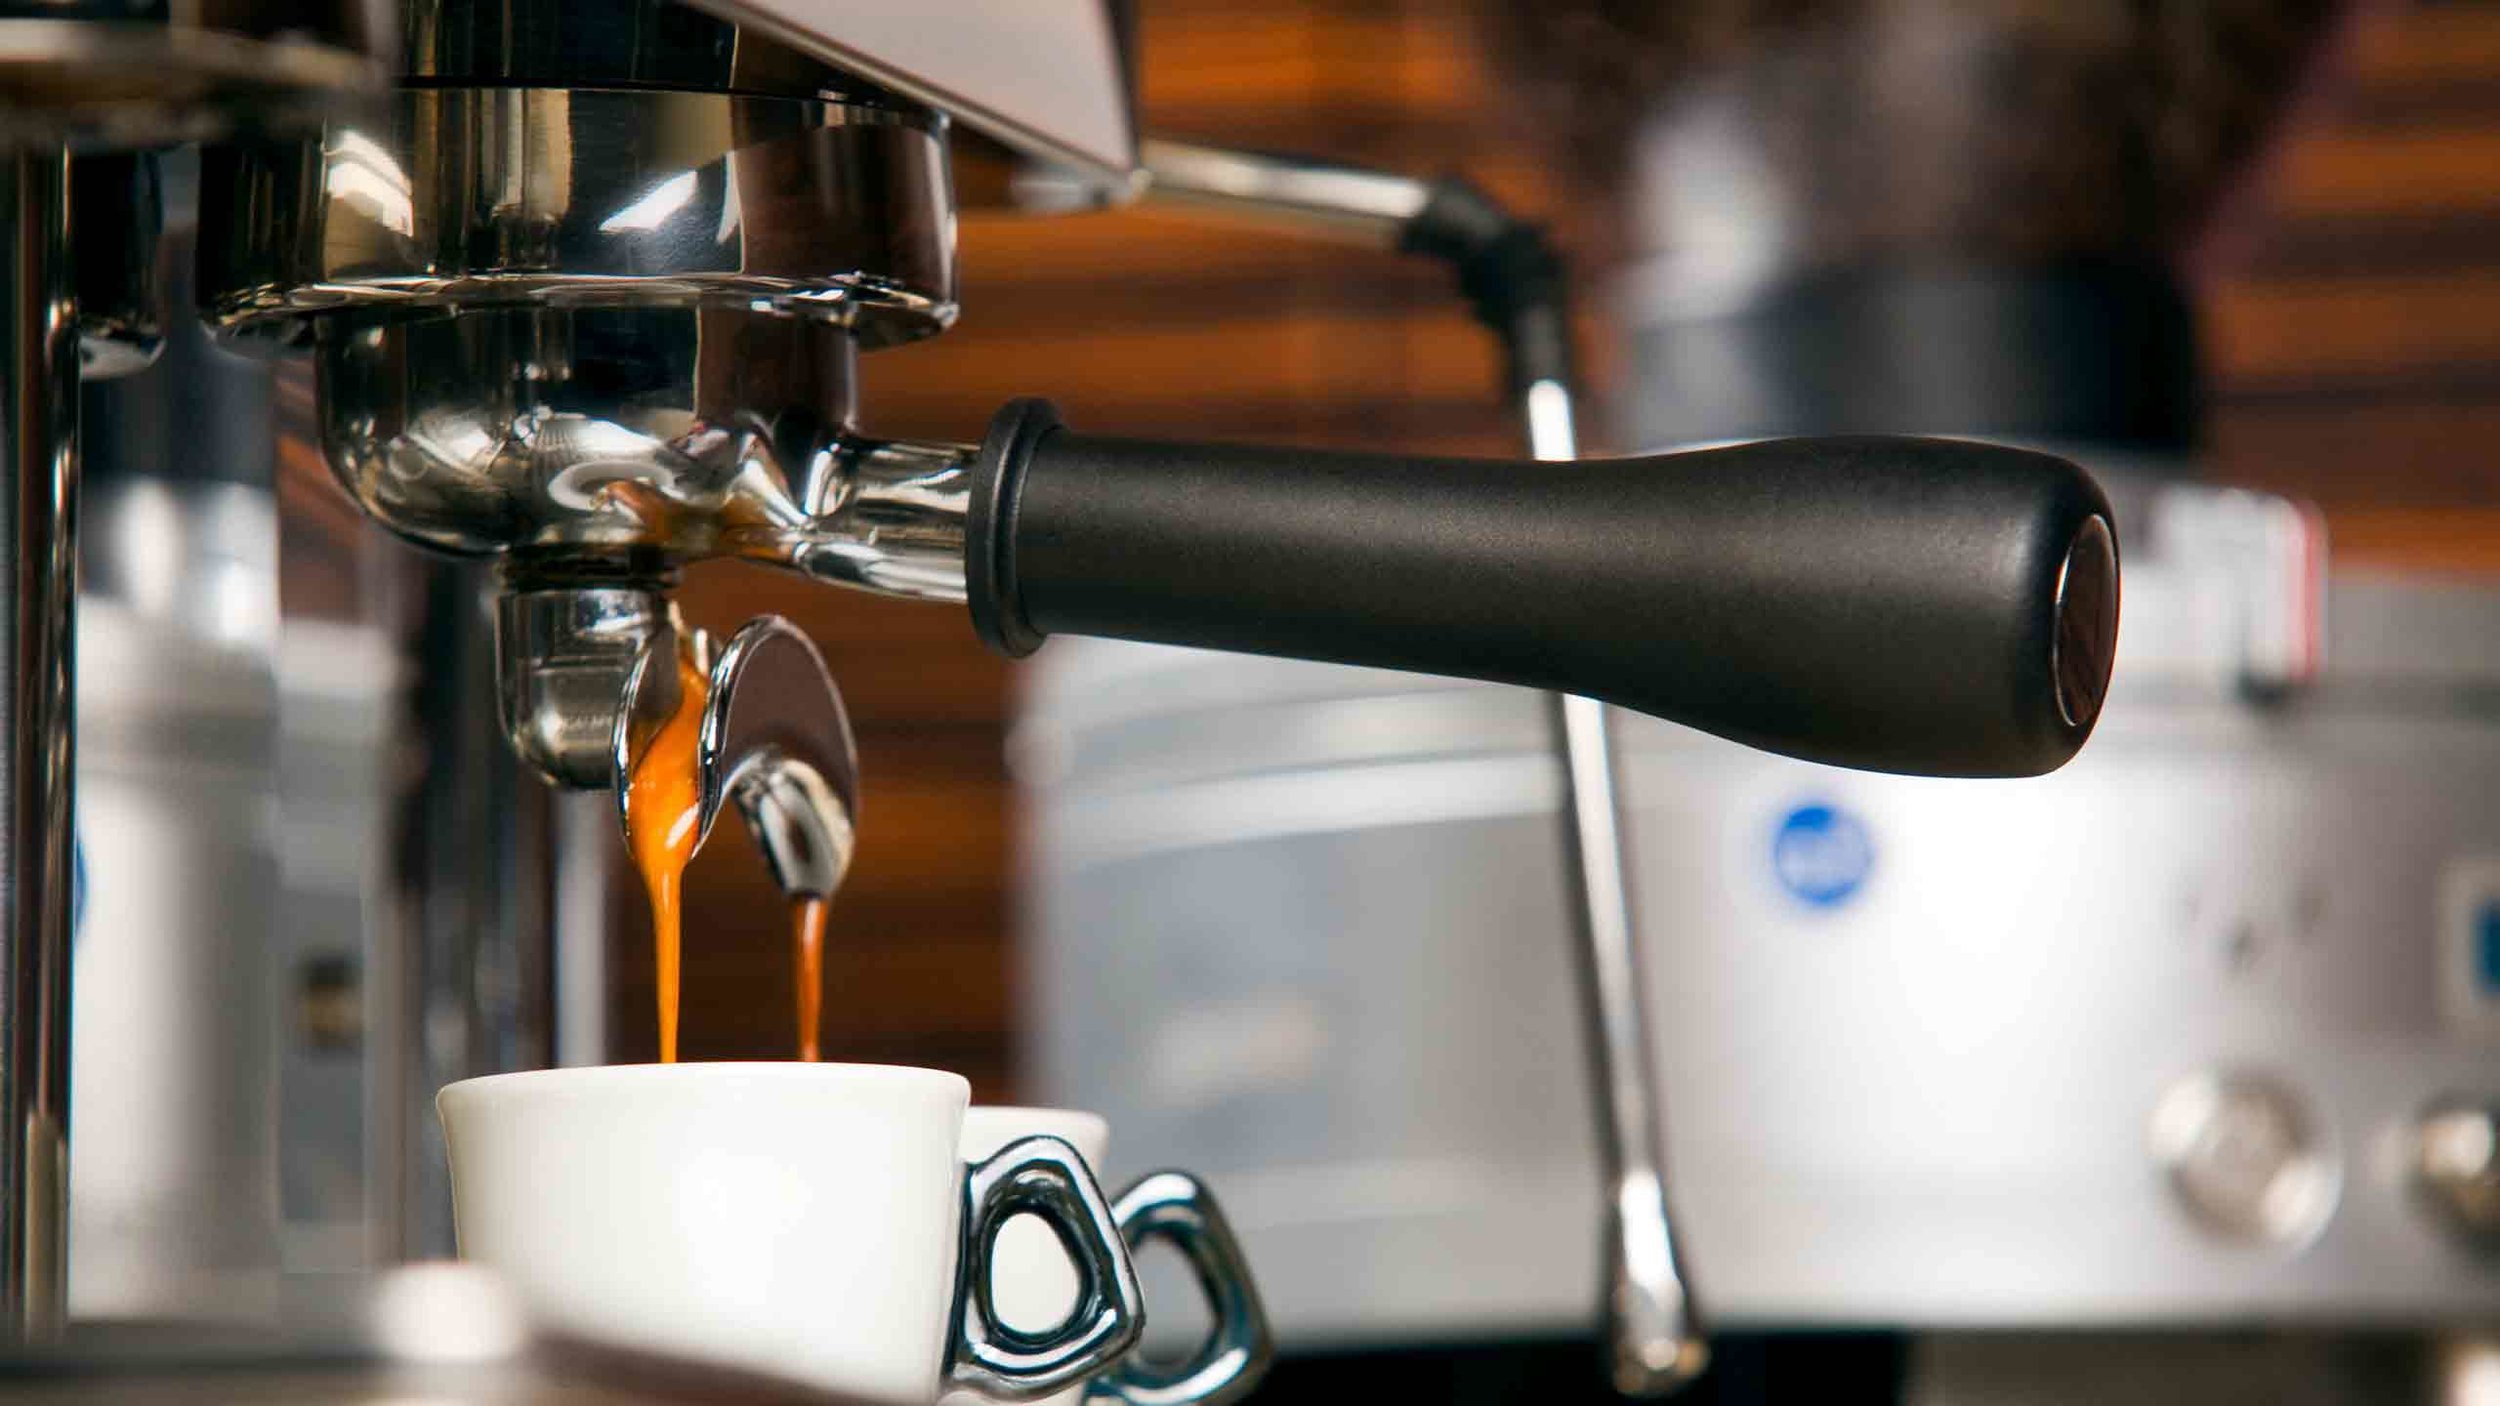 Brewing Kopi Luwak with an Espresso Machine